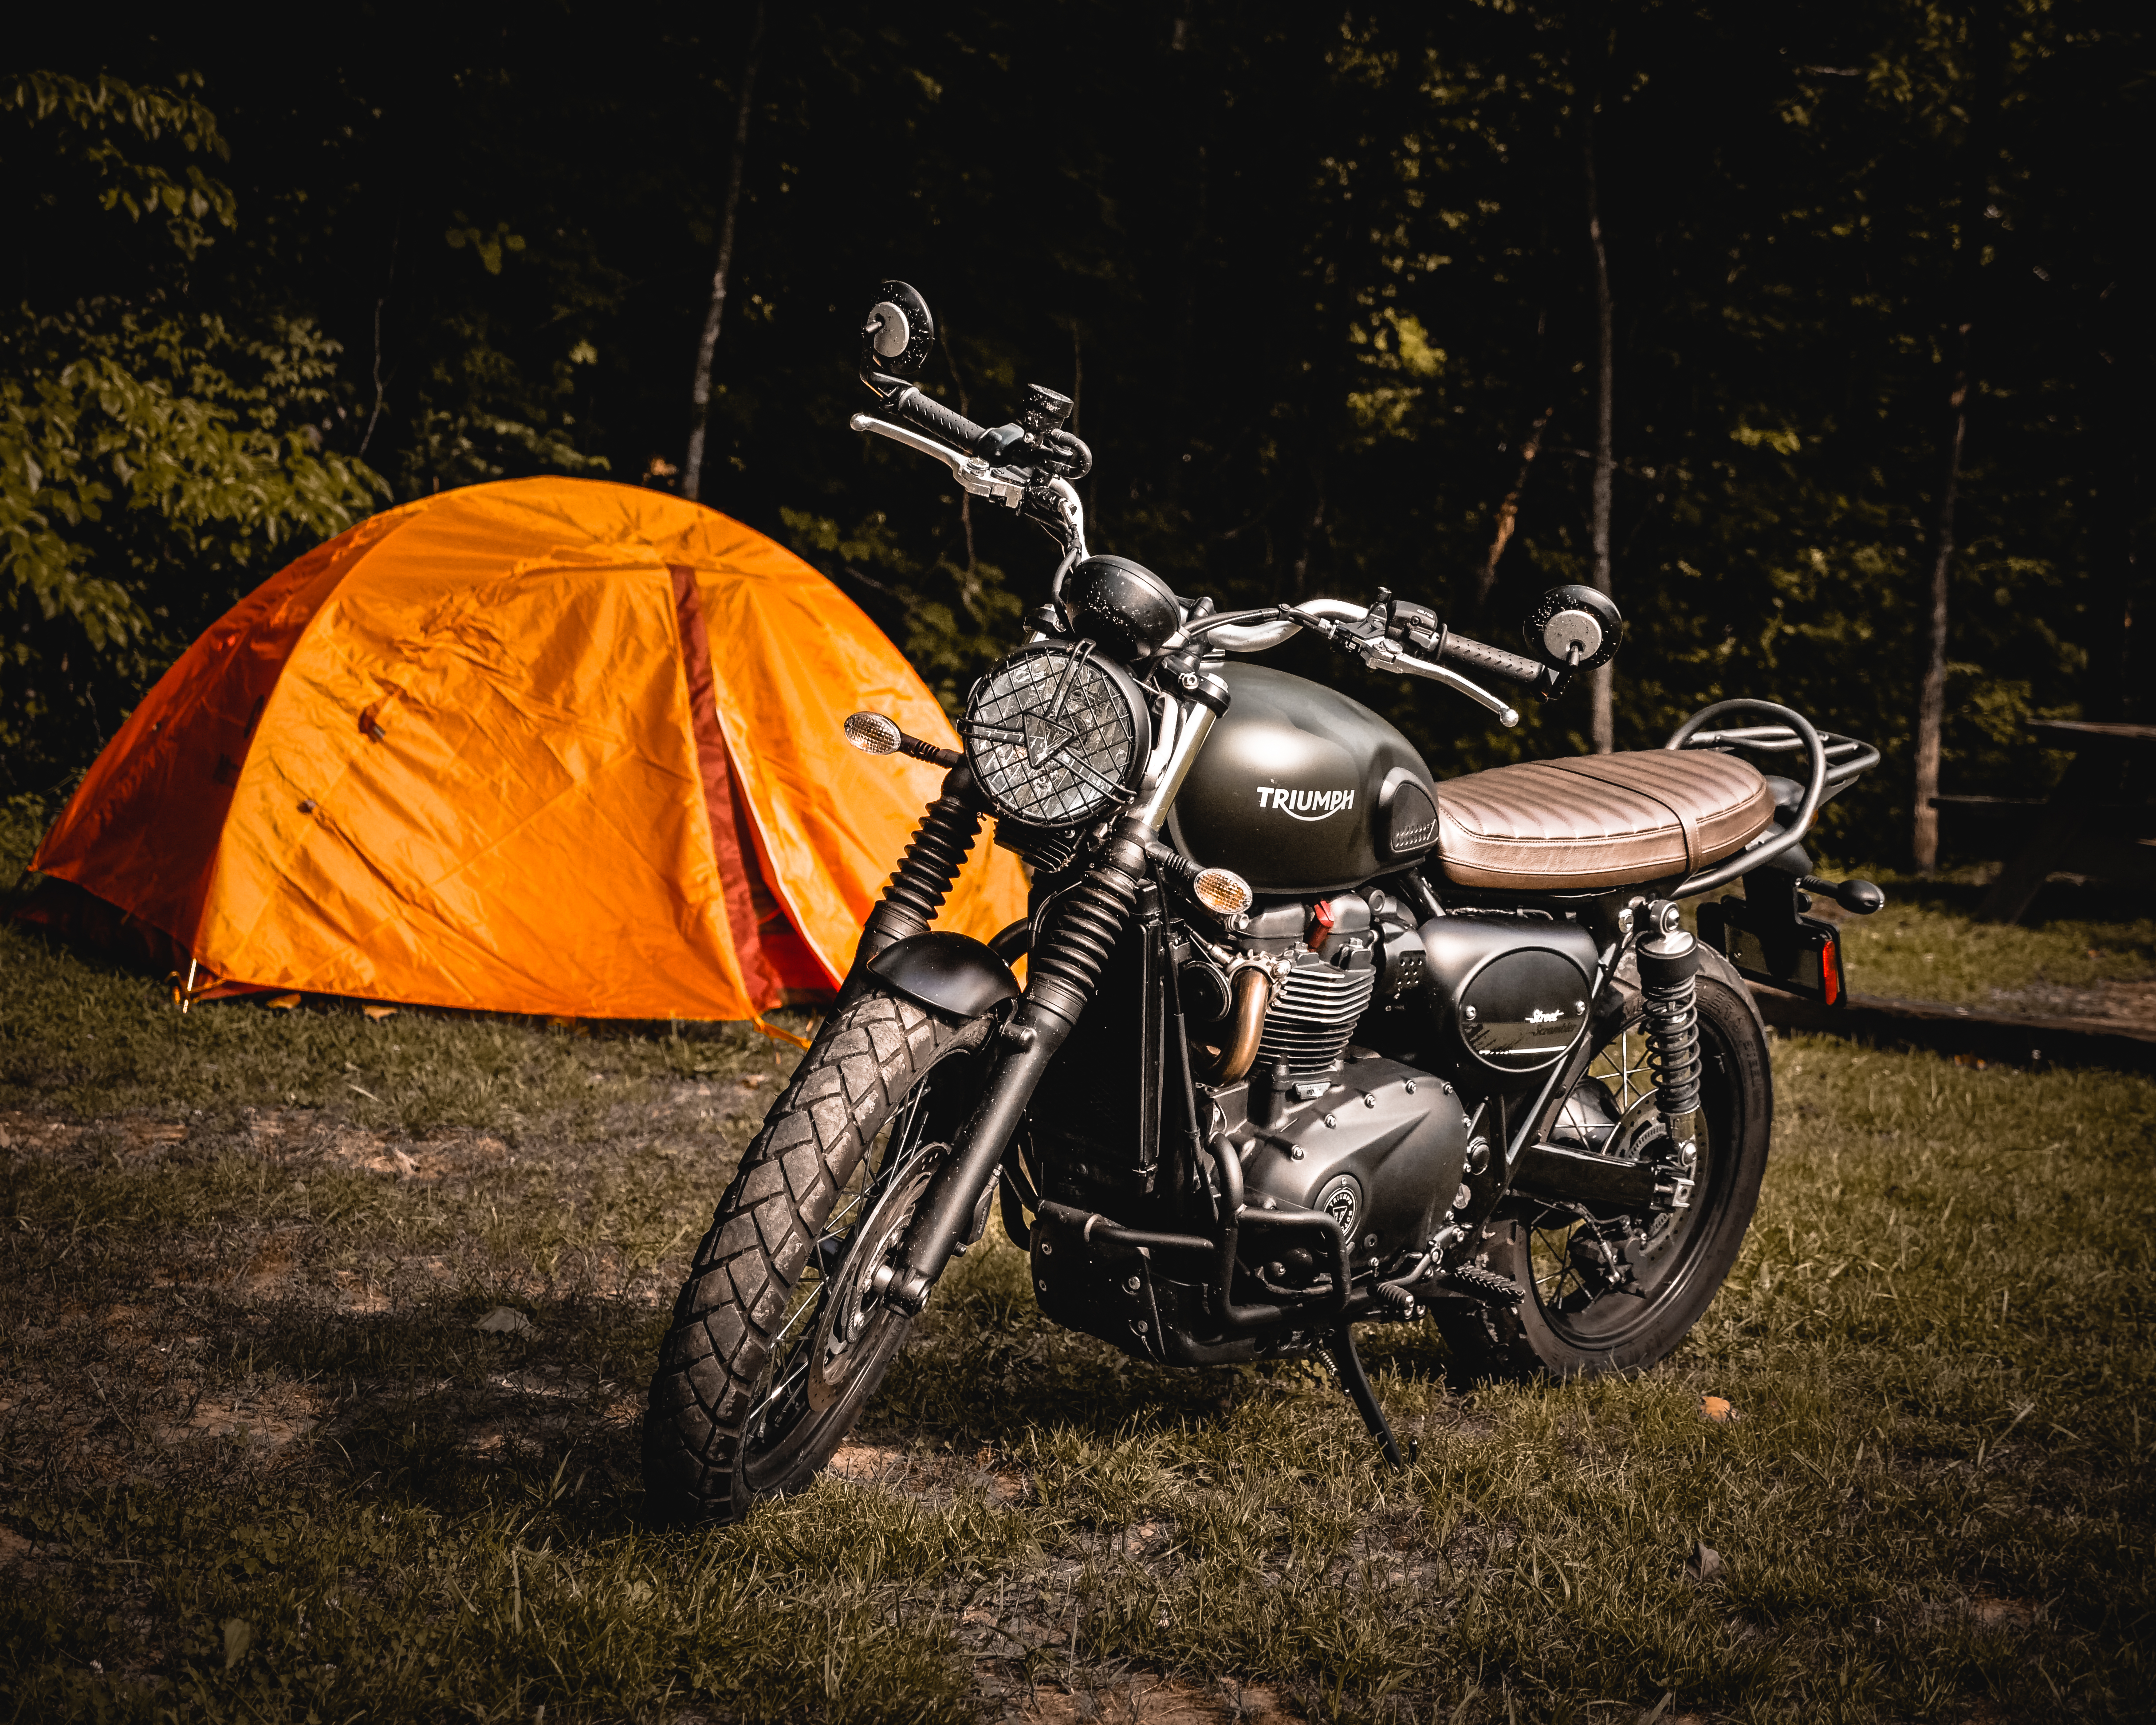 free motorcycle camping  Motorcycle Camping Pictures | Download Free Images on Unsplash